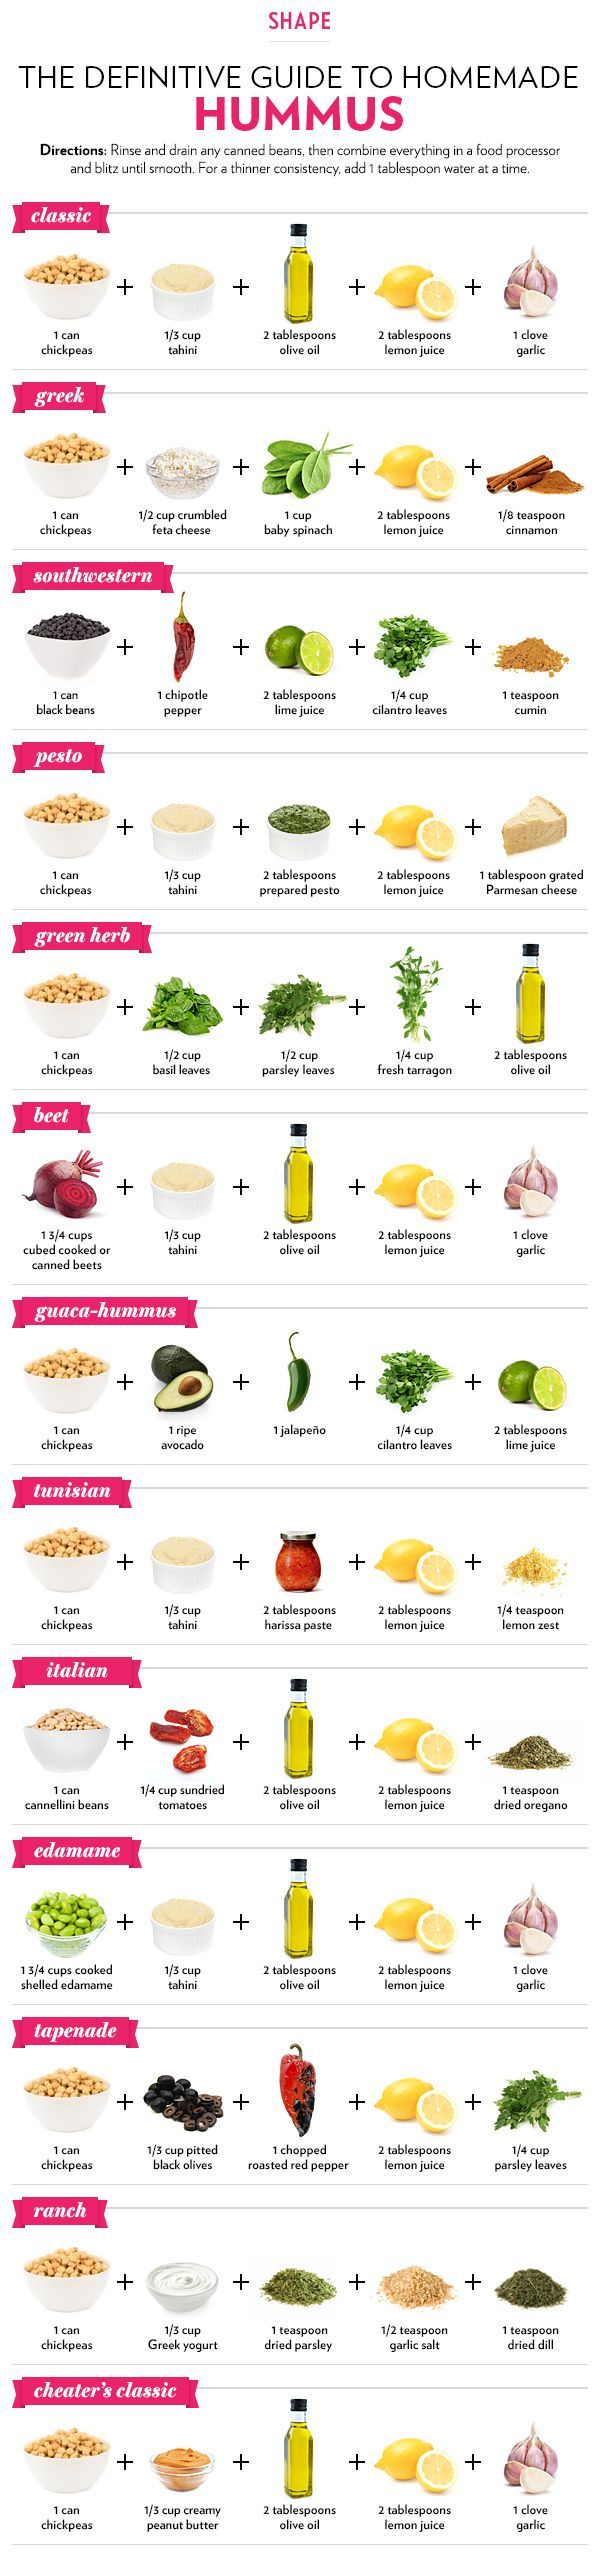 13 ways to make hummus.   SO MUCH HUMMUS.